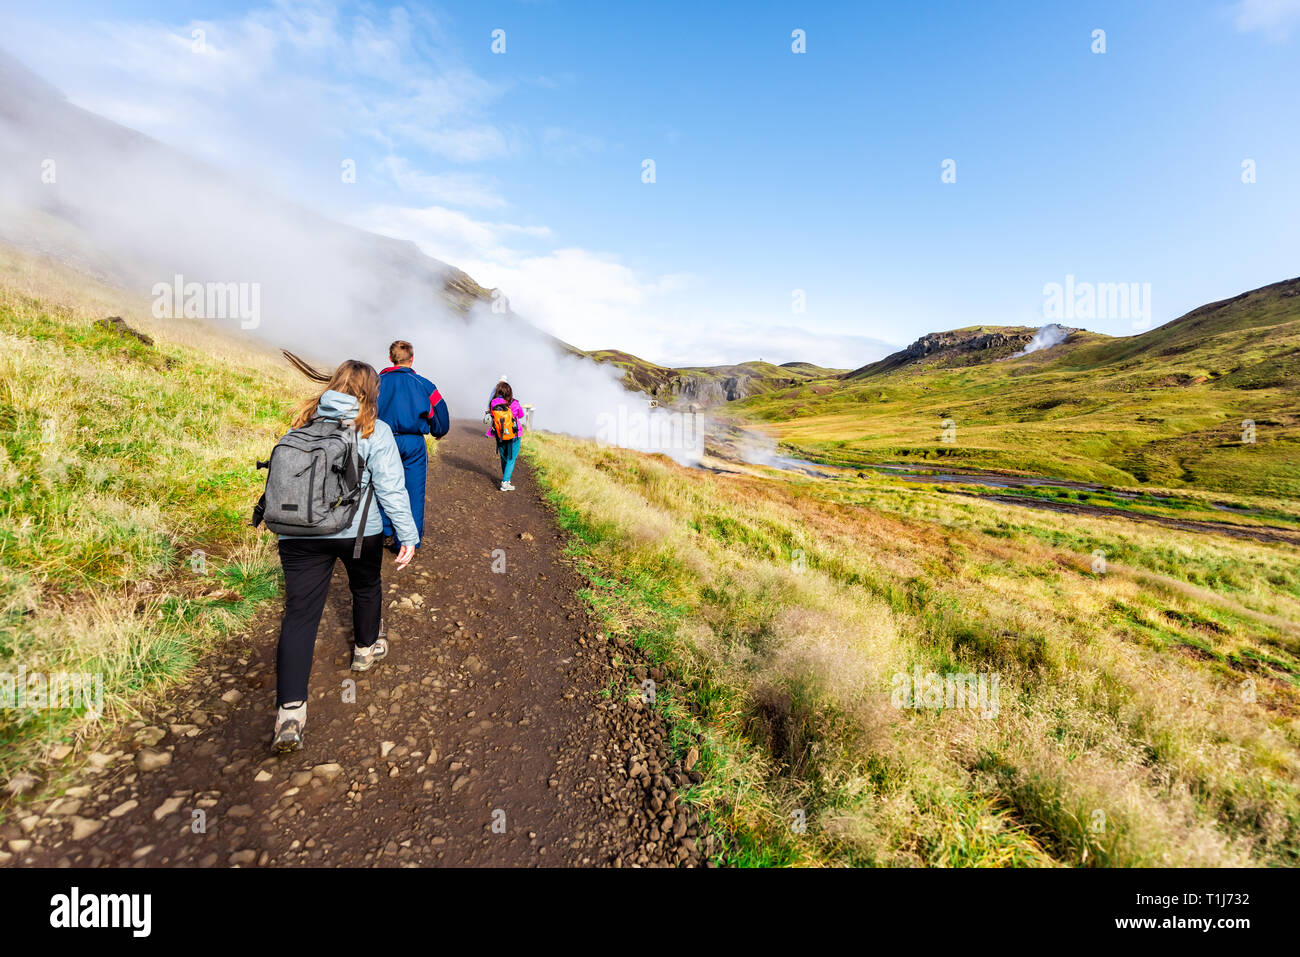 Hveragerdi, Iceland - September 18, 2018: Reykjadalur Hot Springs road trail with steam fumarole vent during autumn day in golden circle with people o - Stock Image